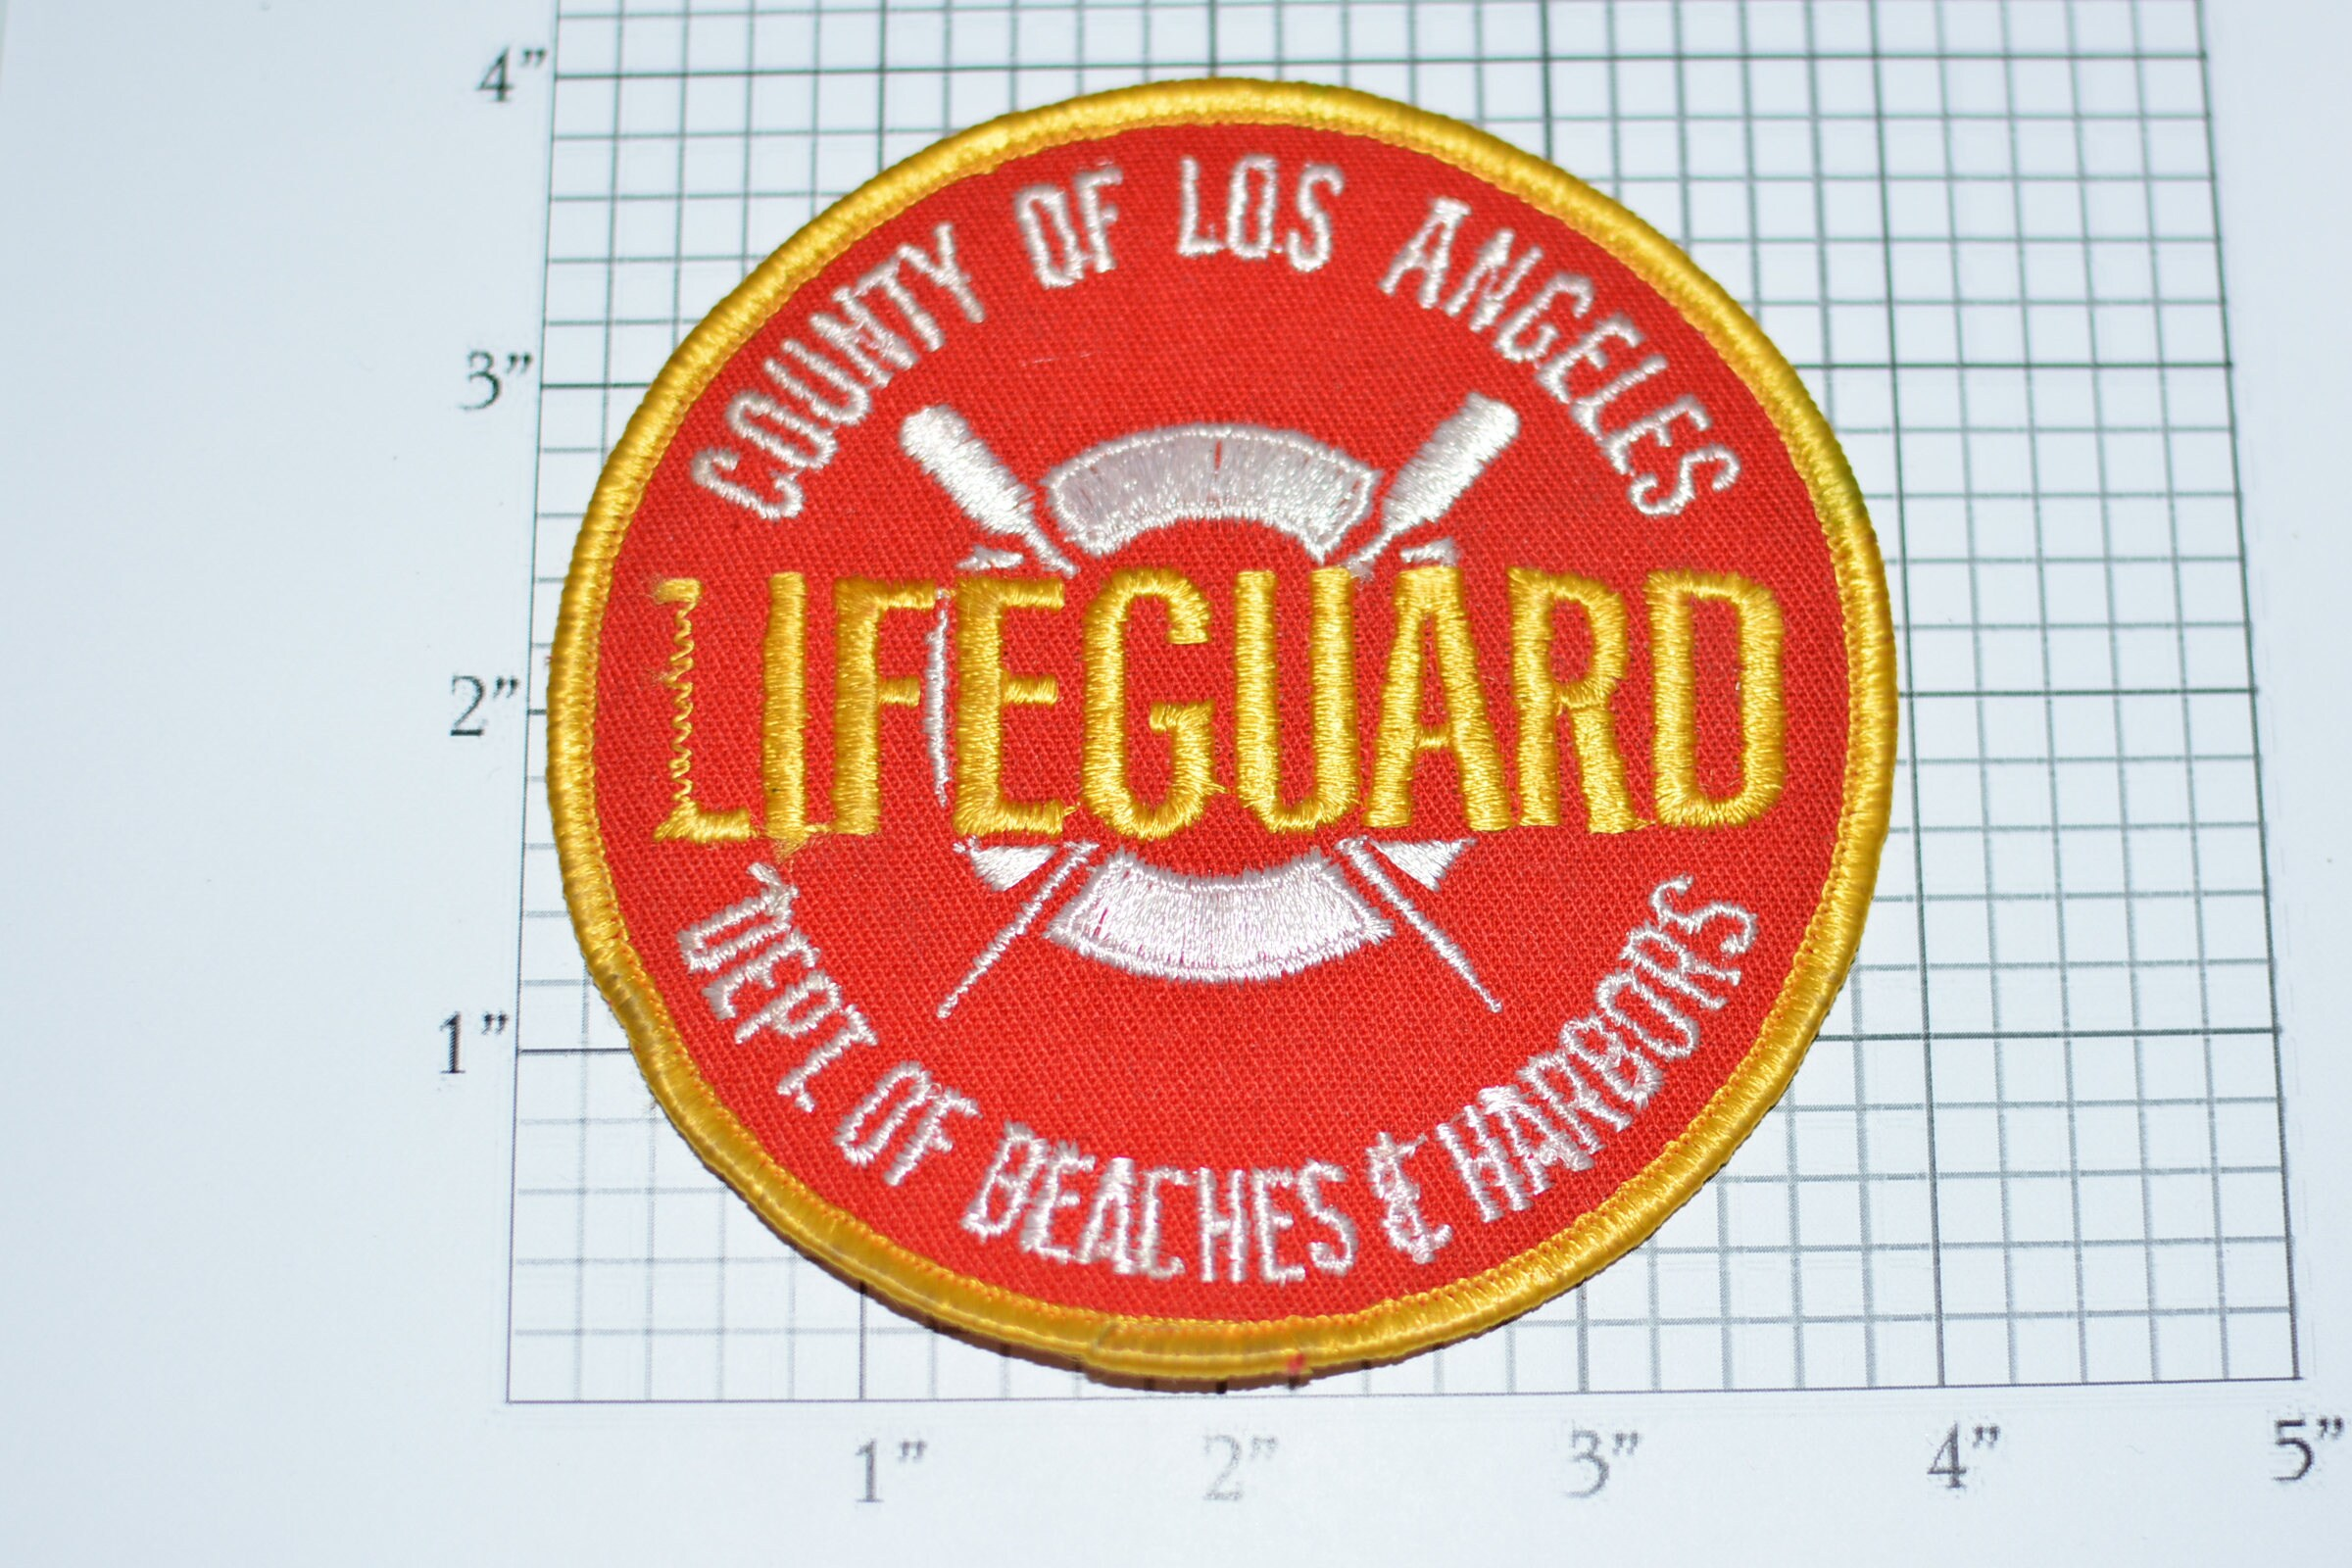 c2cc6eef290 County of Los Angeles Lifeguard (Distressed) Vintage Iron-on ...